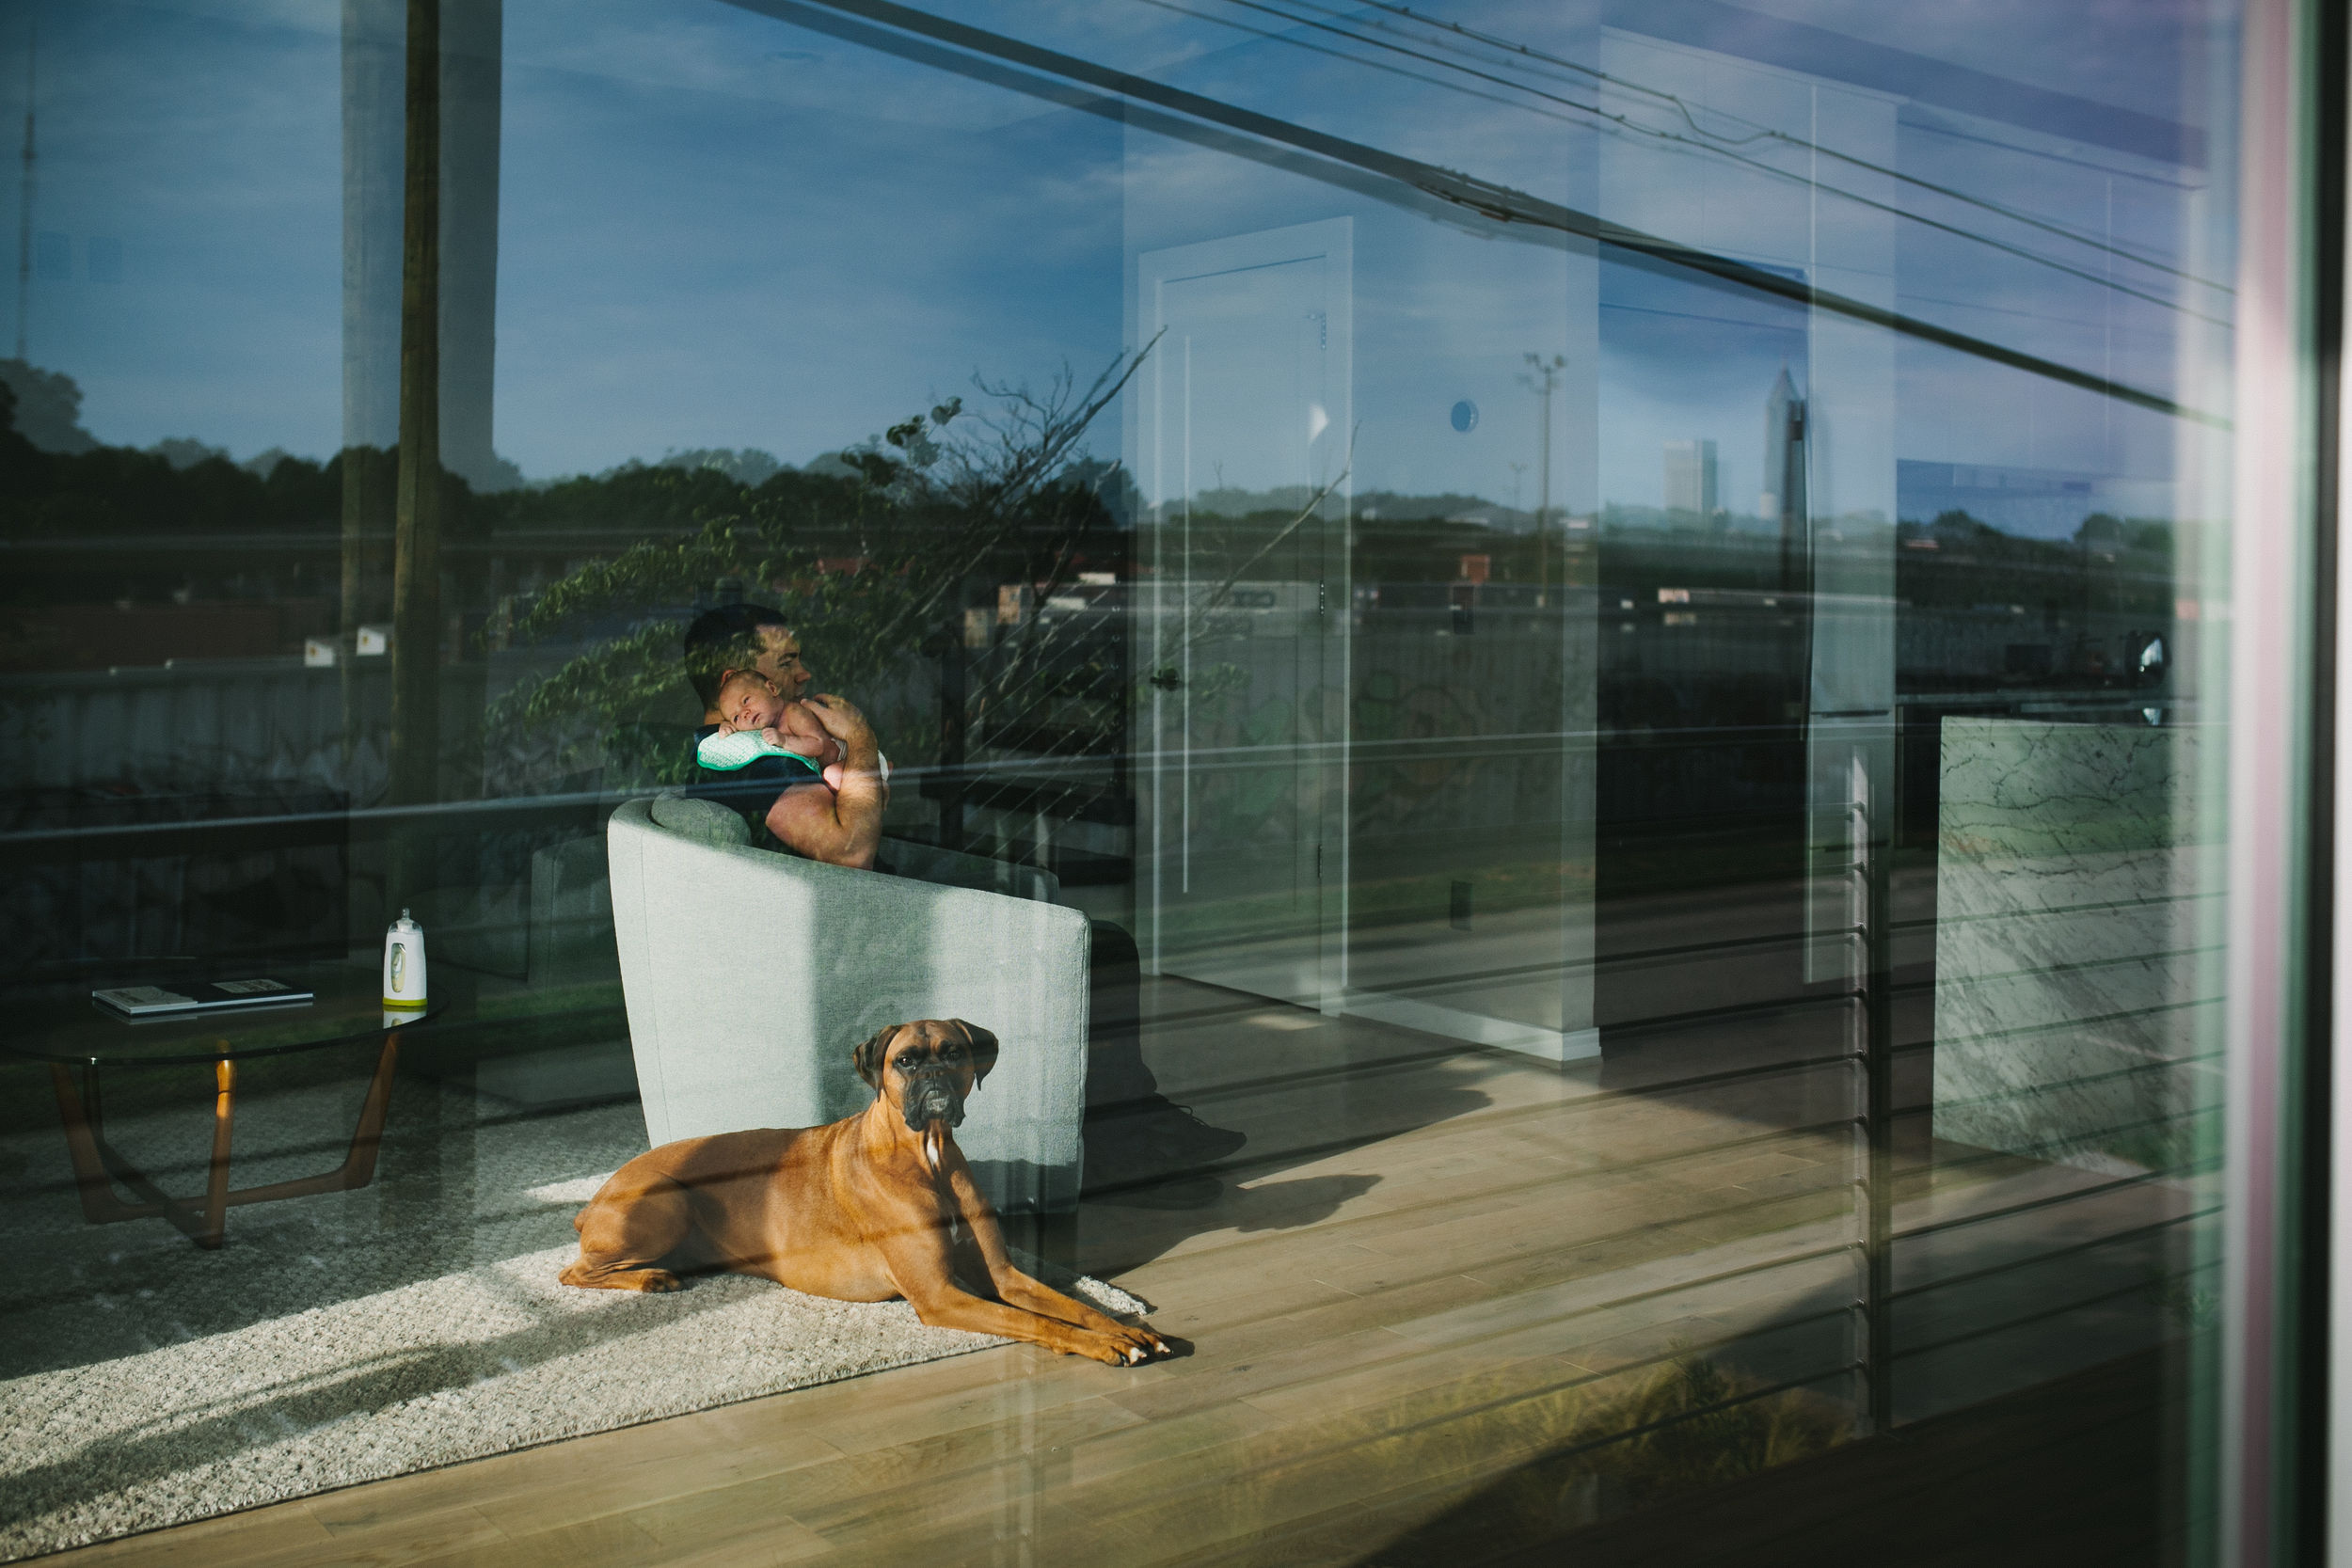 image through window of father holding baby with dog nearby and reflection from at home newborn documentary photography session